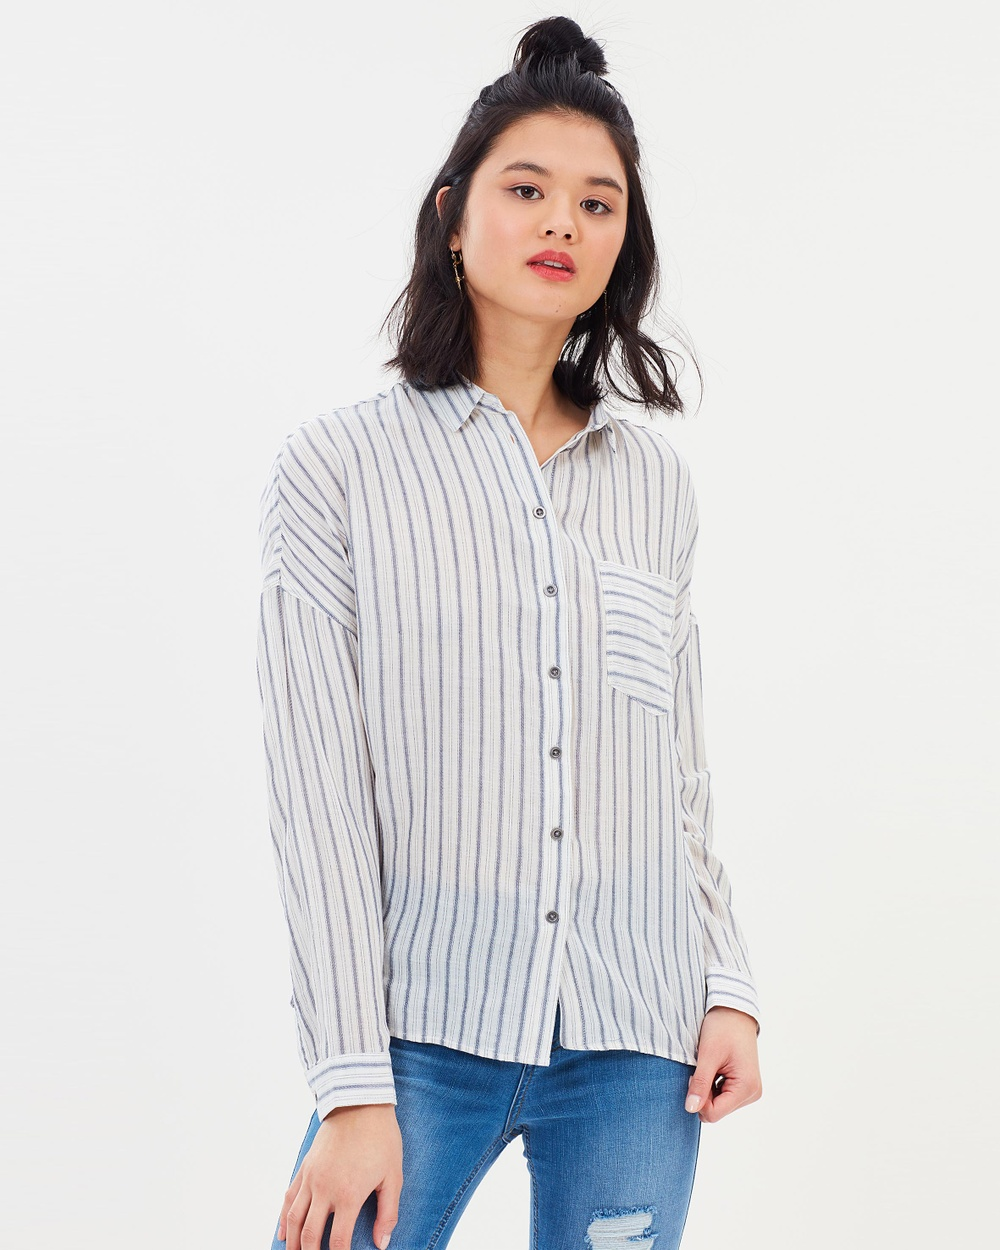 All About Eve Layla Stripe Shirt Tops Vintage White & Dark Blue Stripe Layla Stripe Shirt